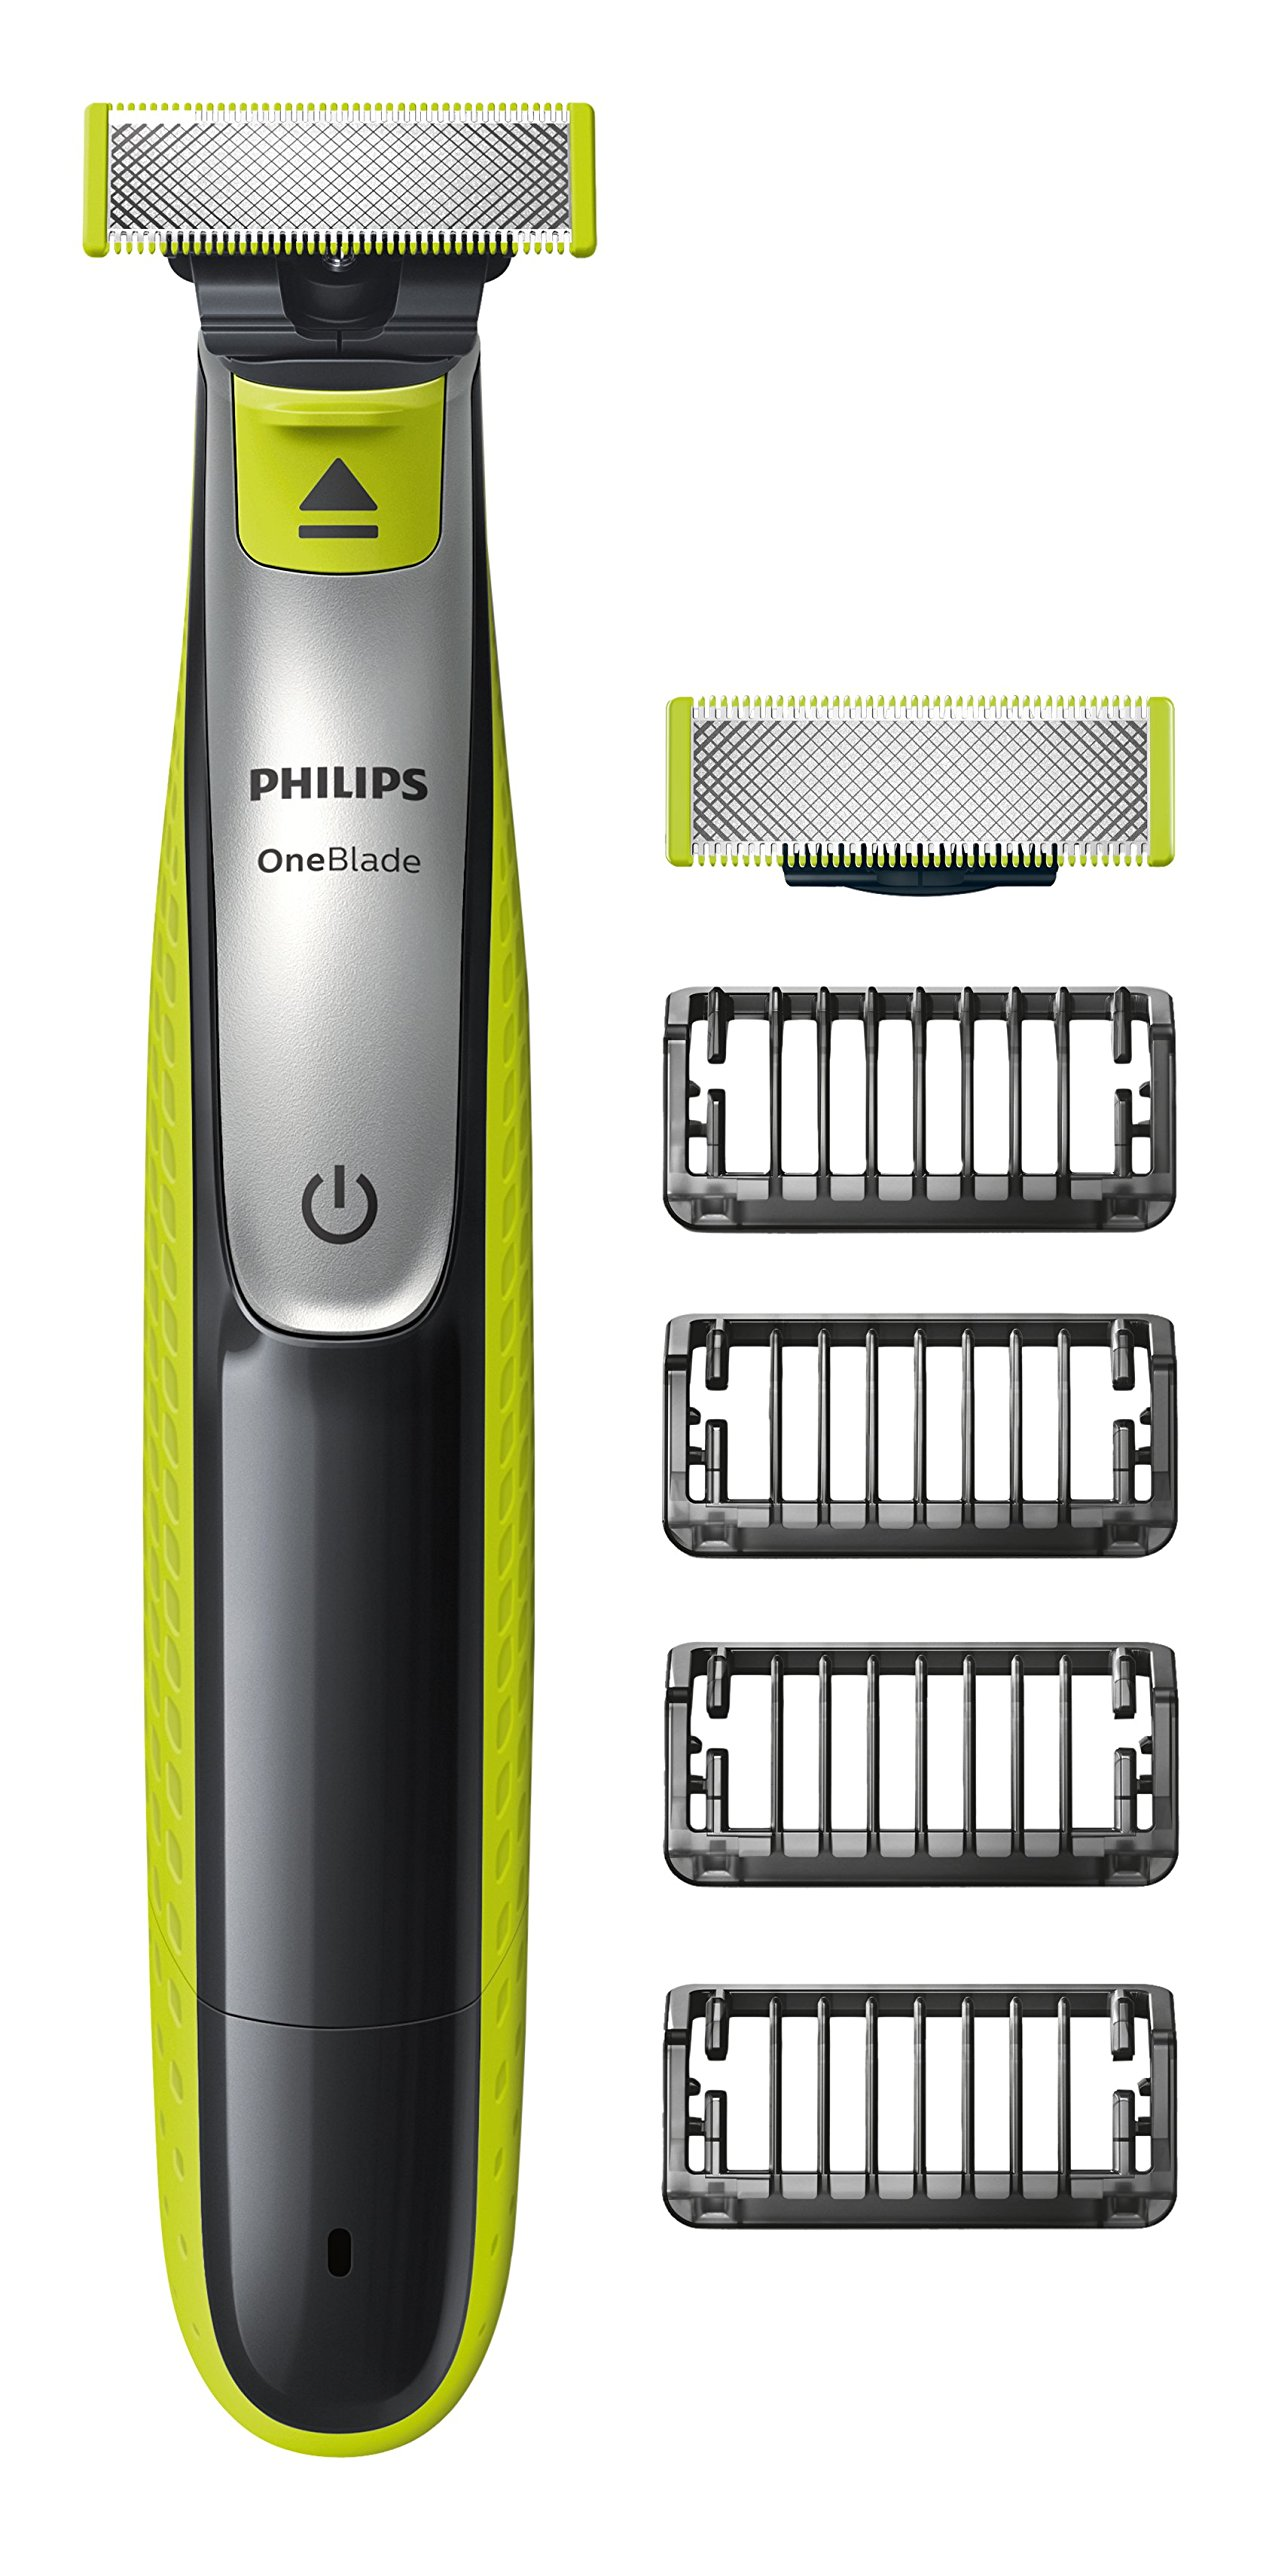 Philips OneBlade Hybrid Trimmer & Shaver with 4 x Lengths & 1 Extra Blade Amazon Exclusive (UK 2-Pin Bathroom Plug) - QP2530/30 product image